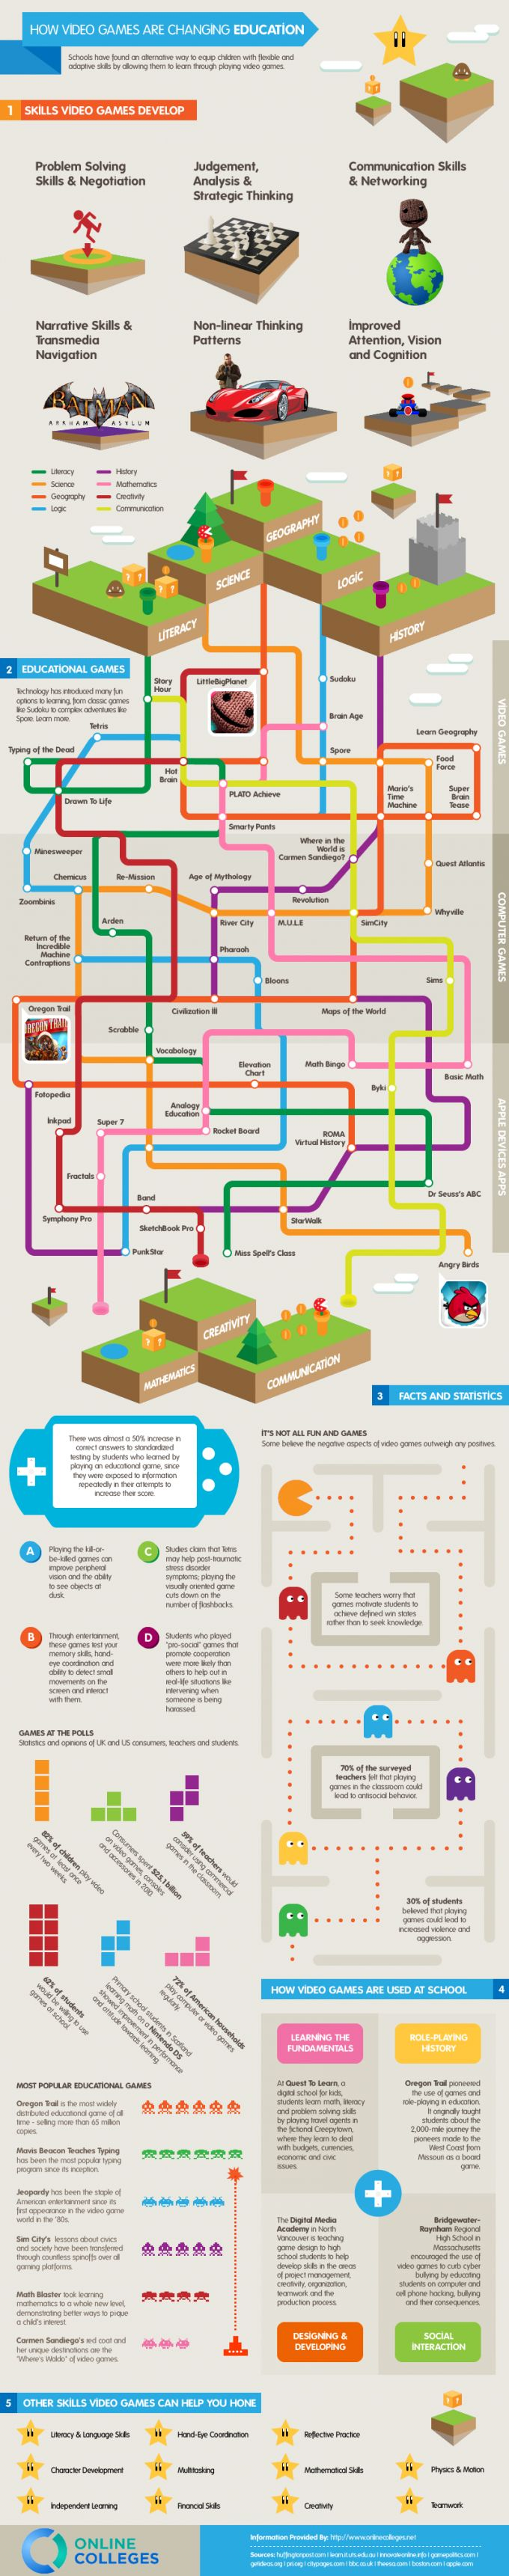 The Gaming Revolution in Education